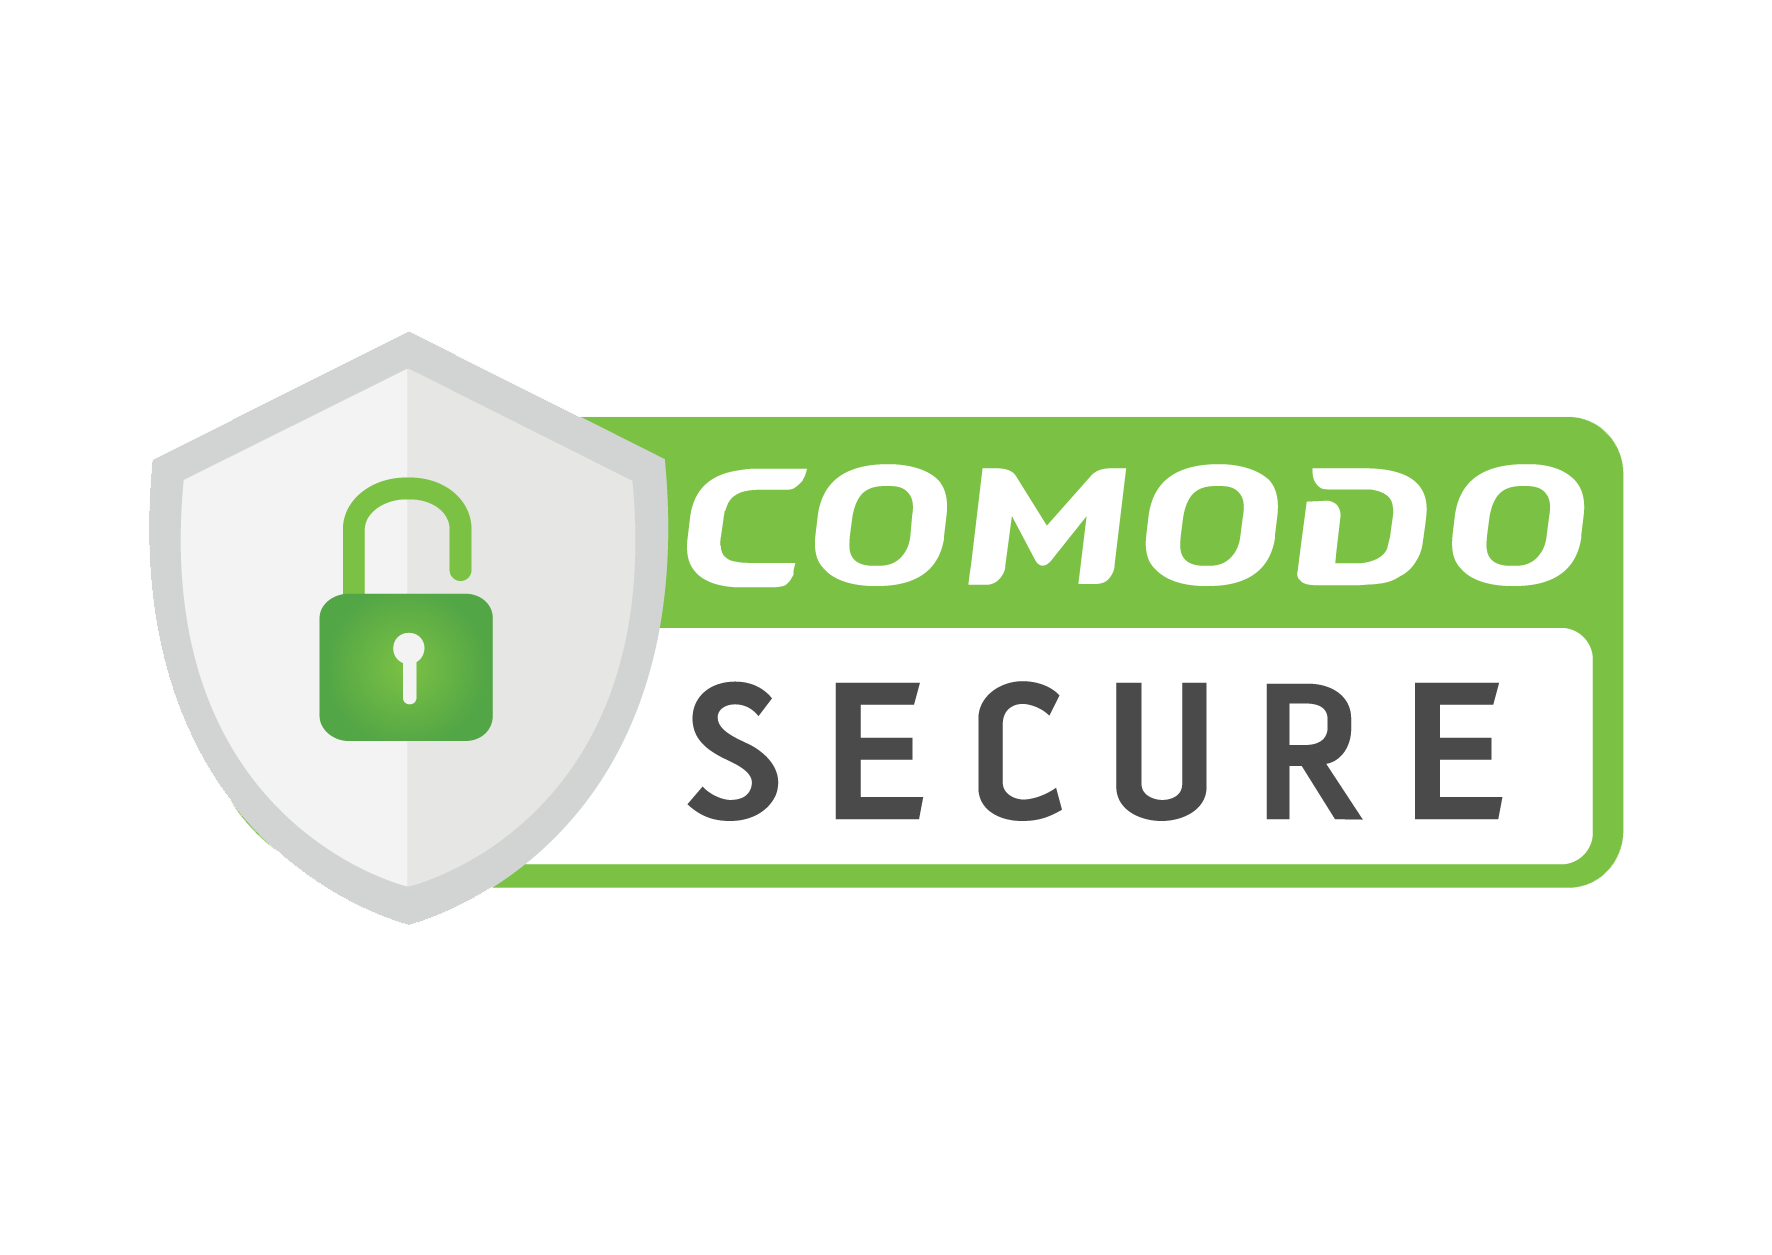 Protected by SSL (Secure Socket Layer) encryption